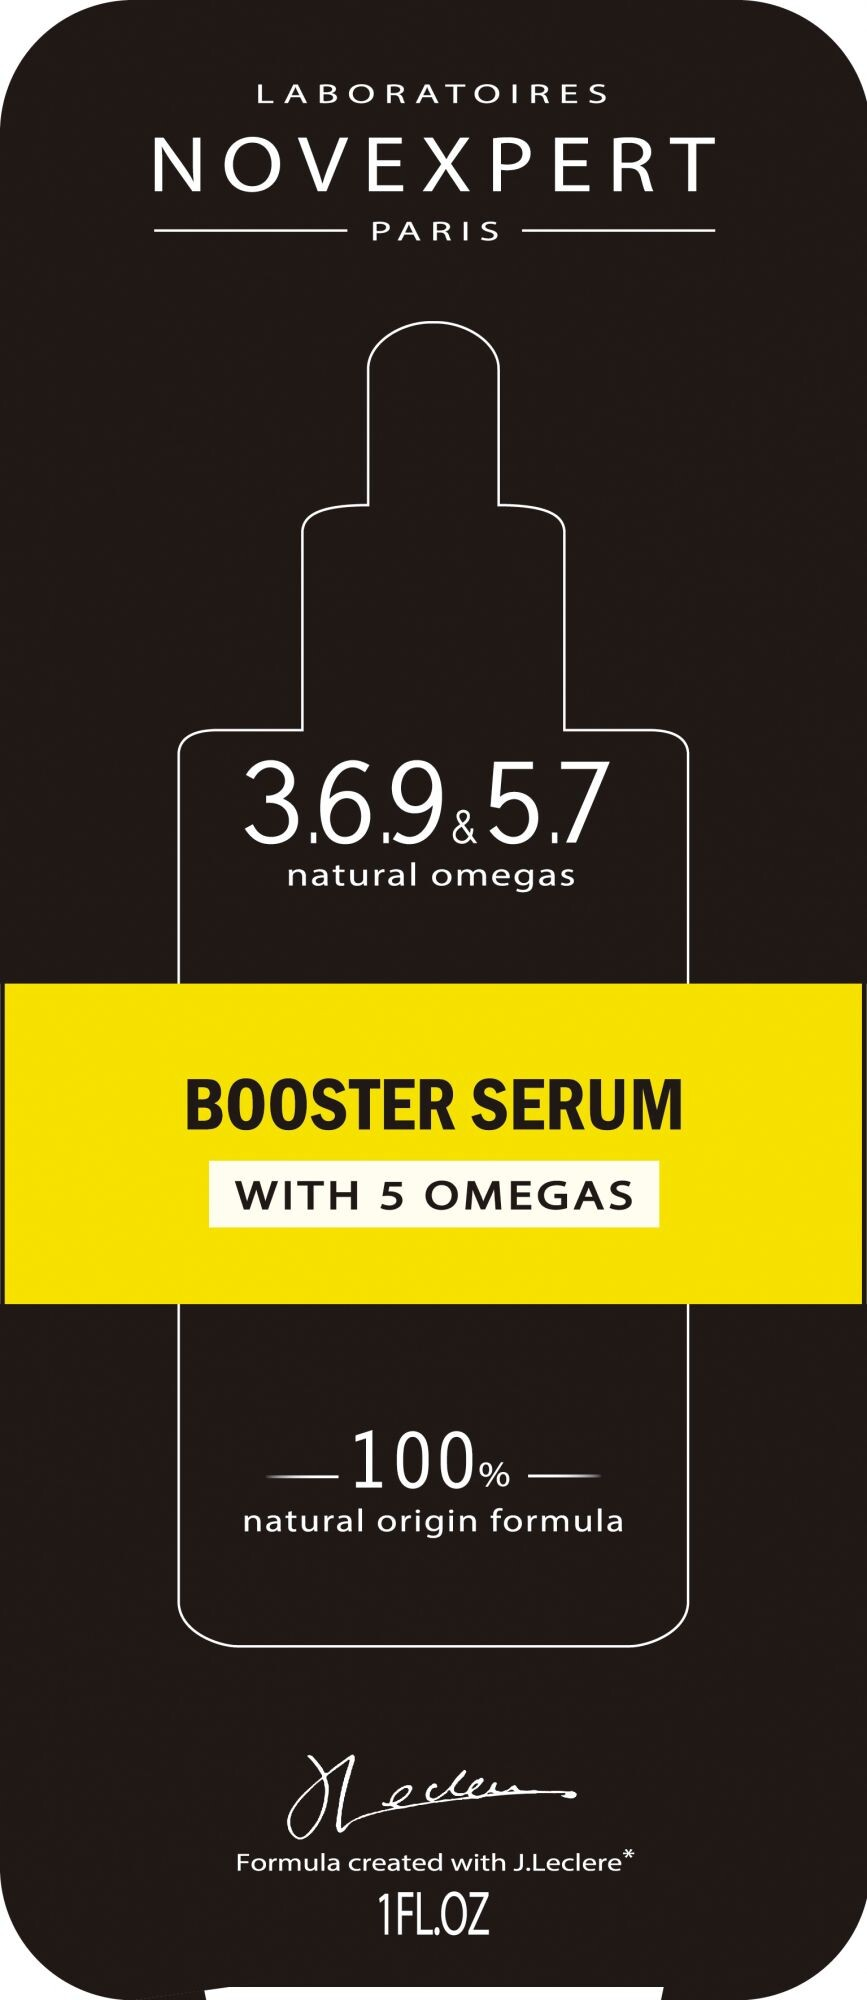 BOOSTER SERUM WITH 5 OMEGAS NUTRITION